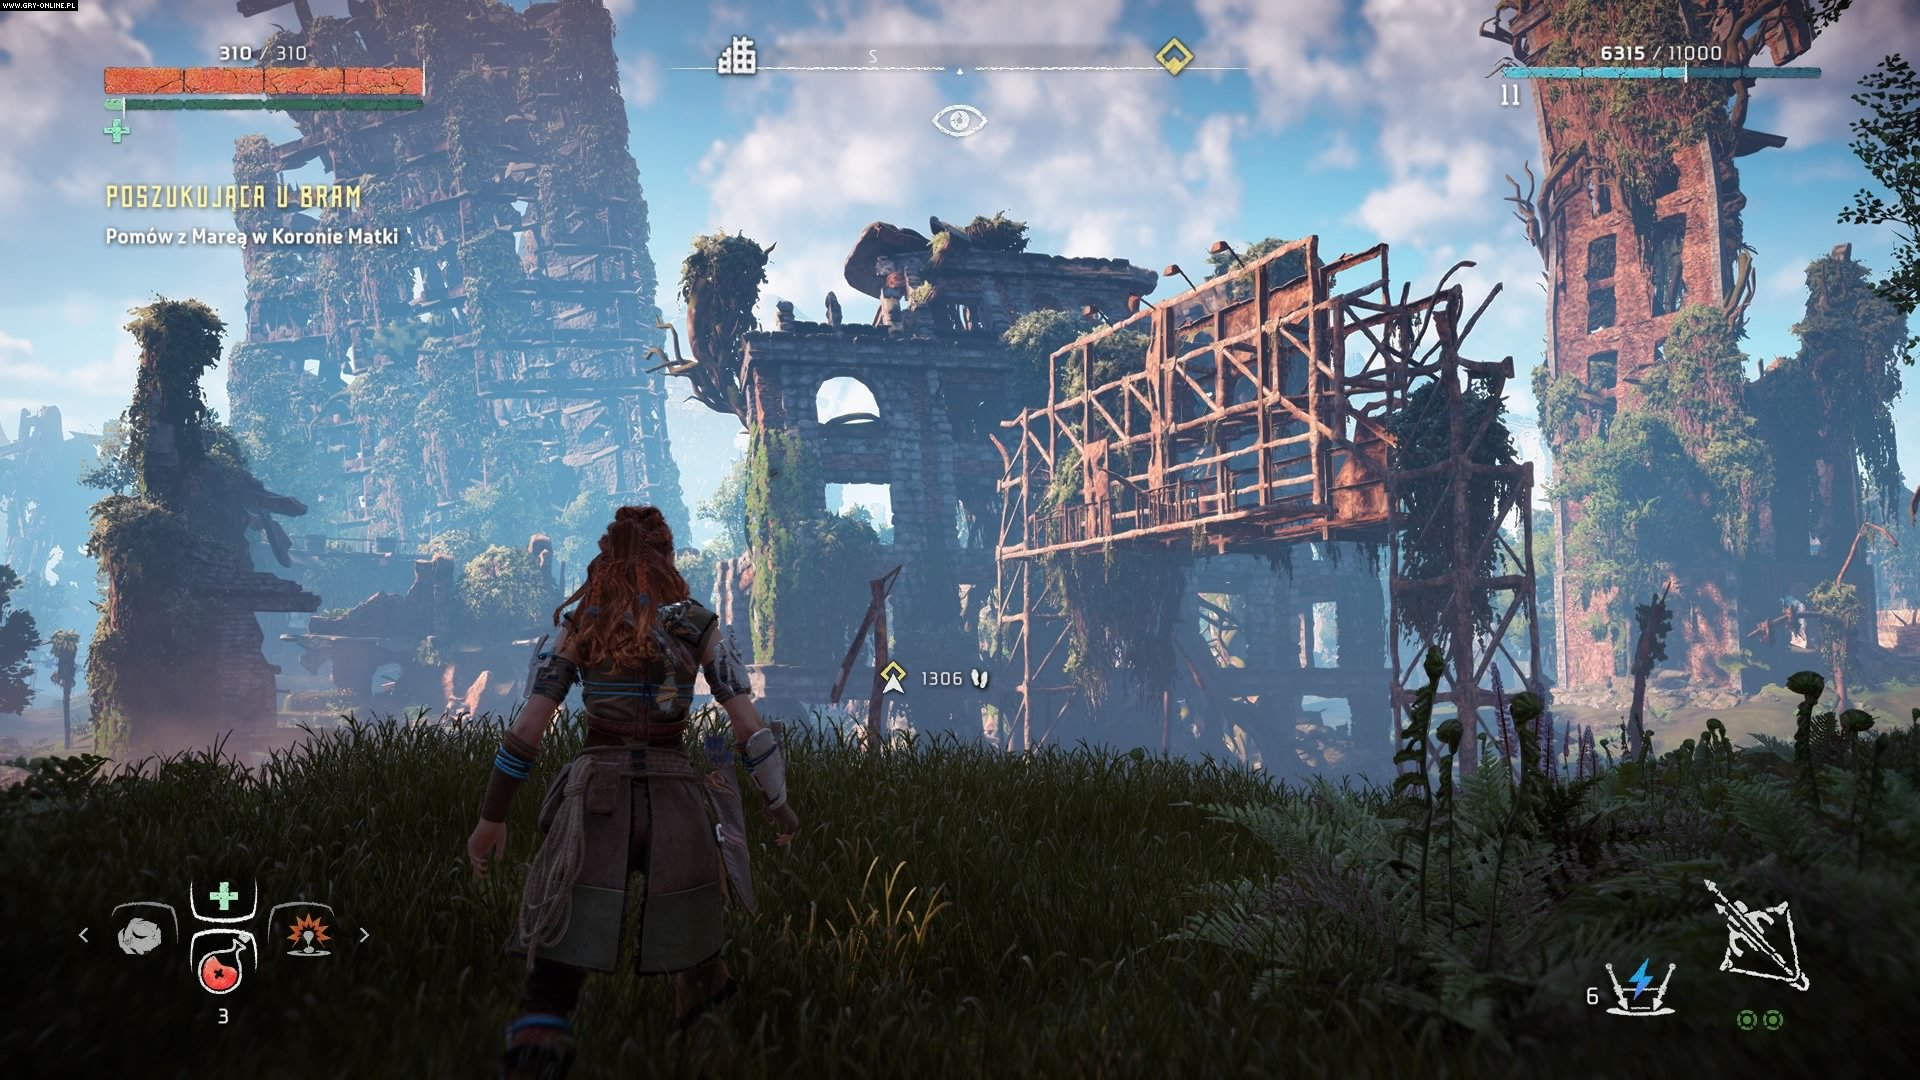 Horizon: Zero Dawn PS4 Gry Screen 74/131, Guerrilla Games, Sony Interactive Entertainment